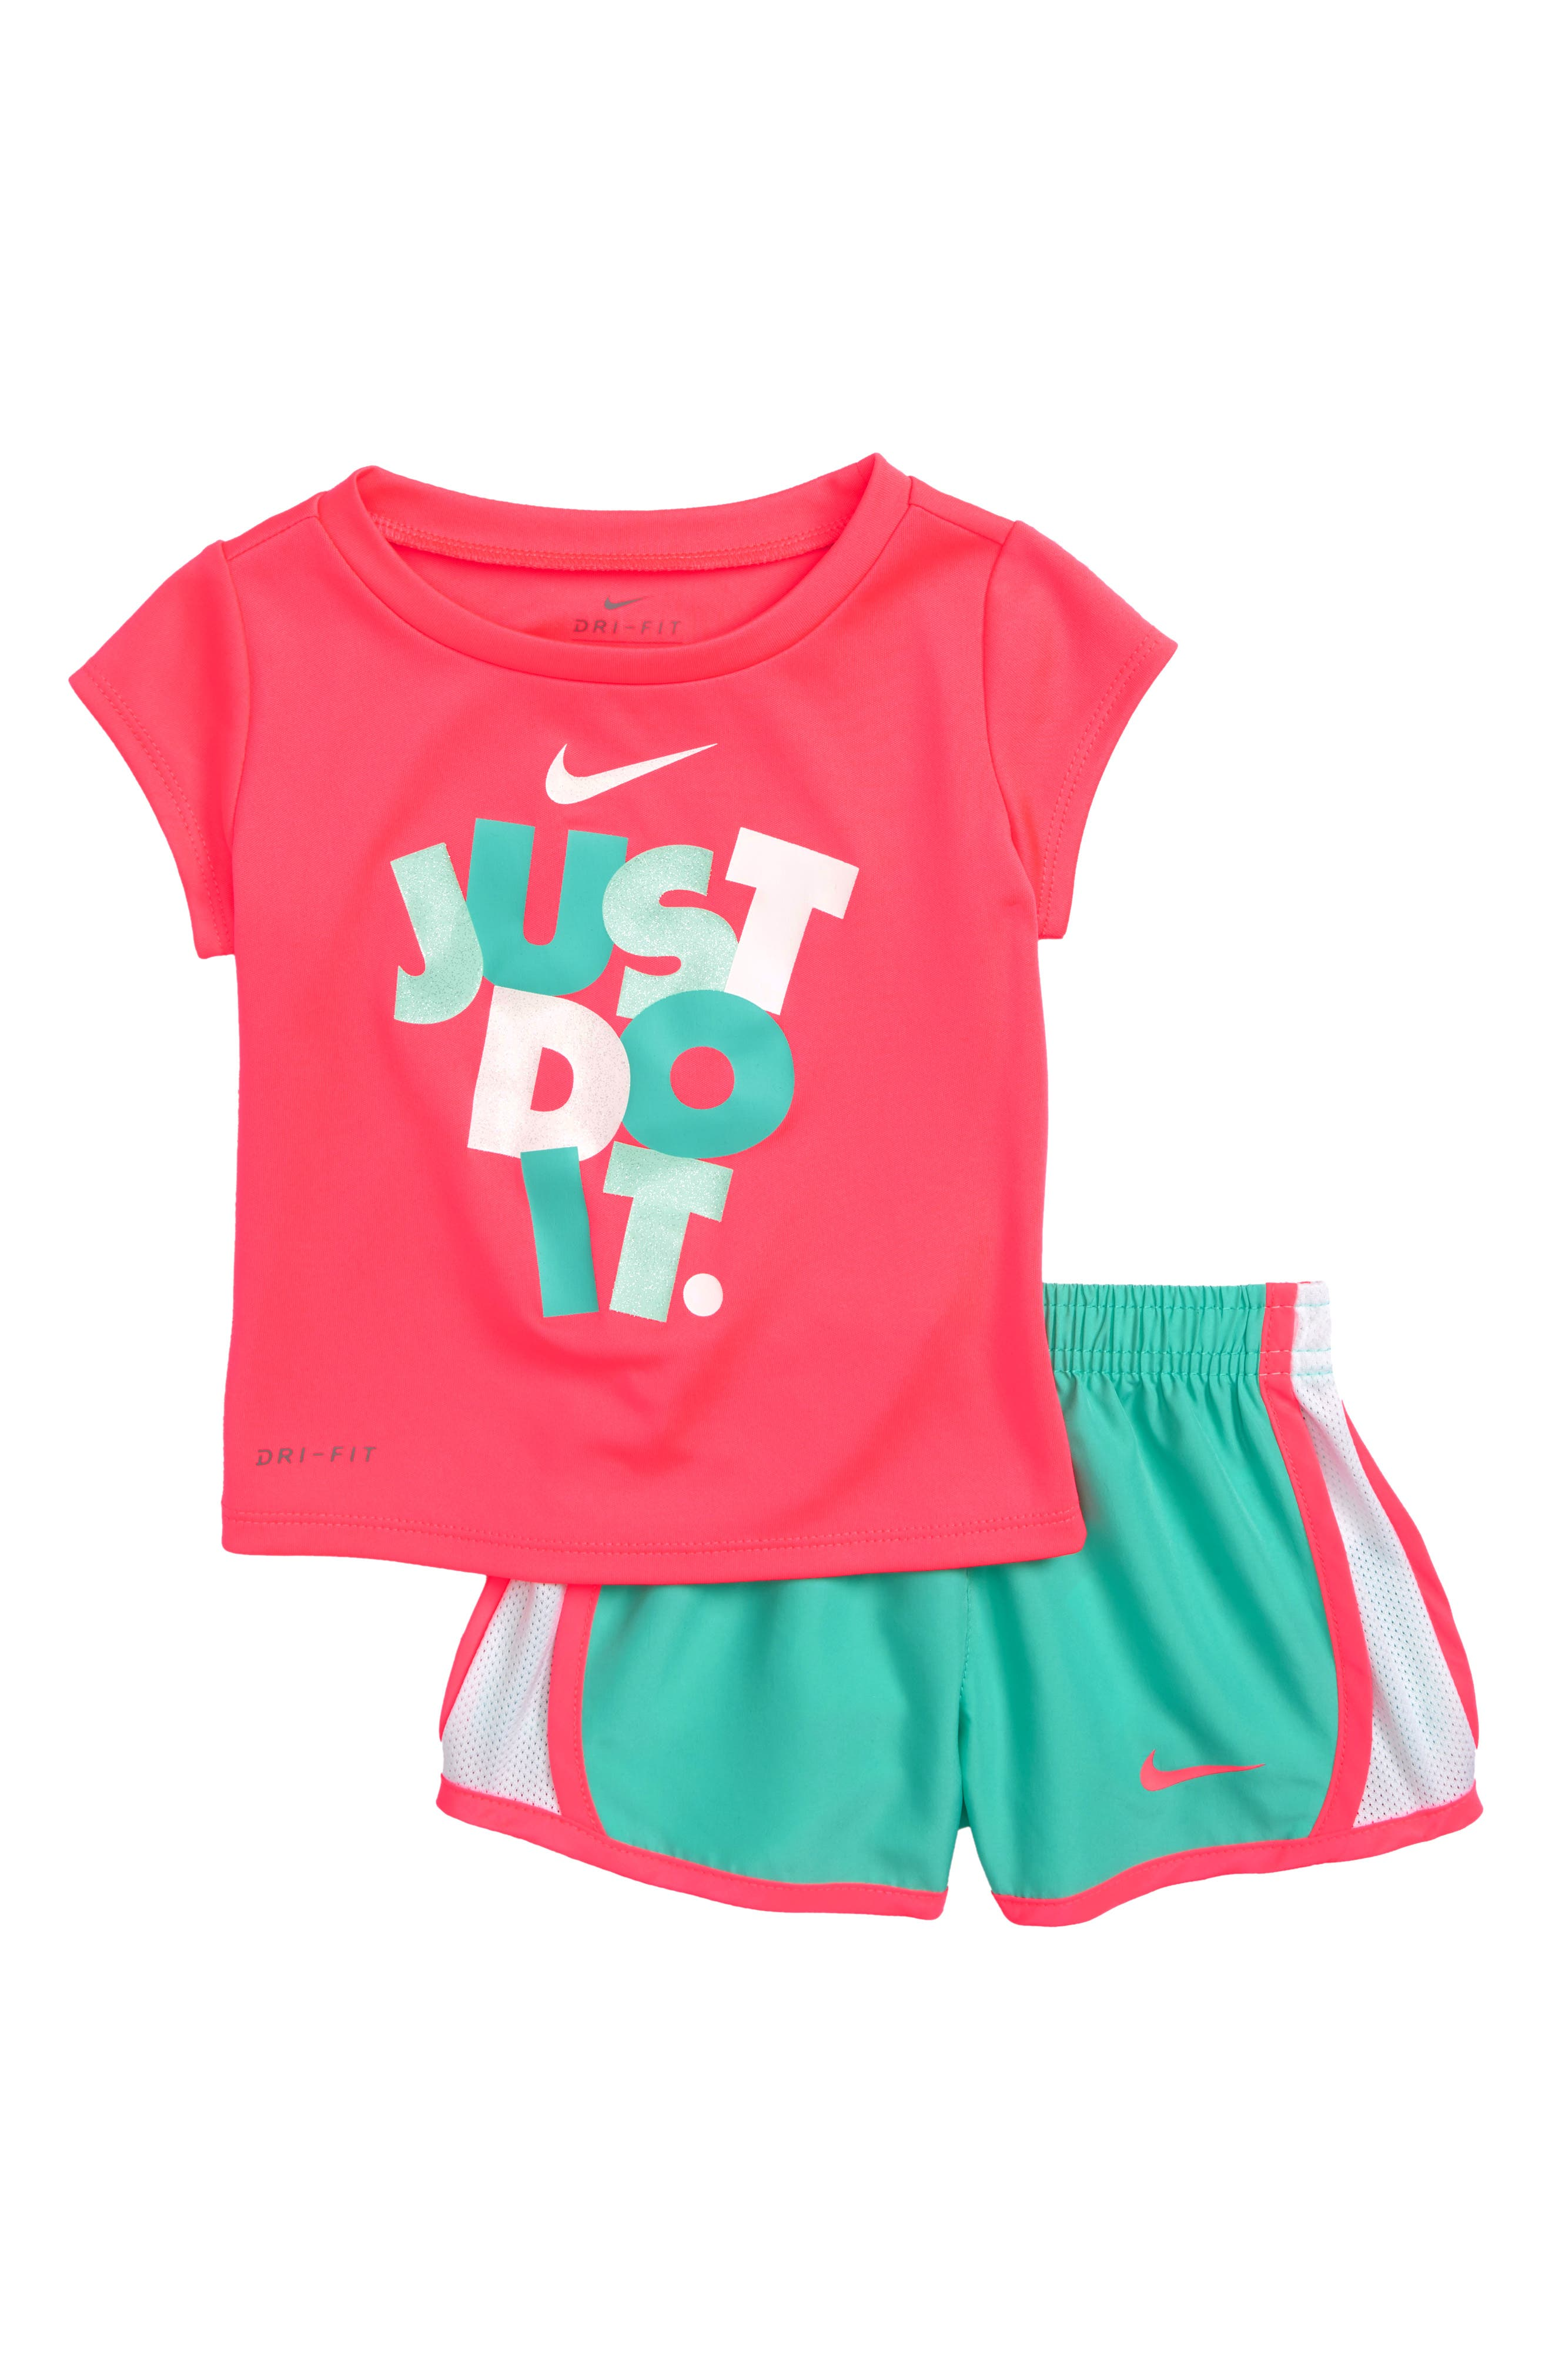 Nike Dry Just Do It Tee & Shorts Set (Baby Girls)